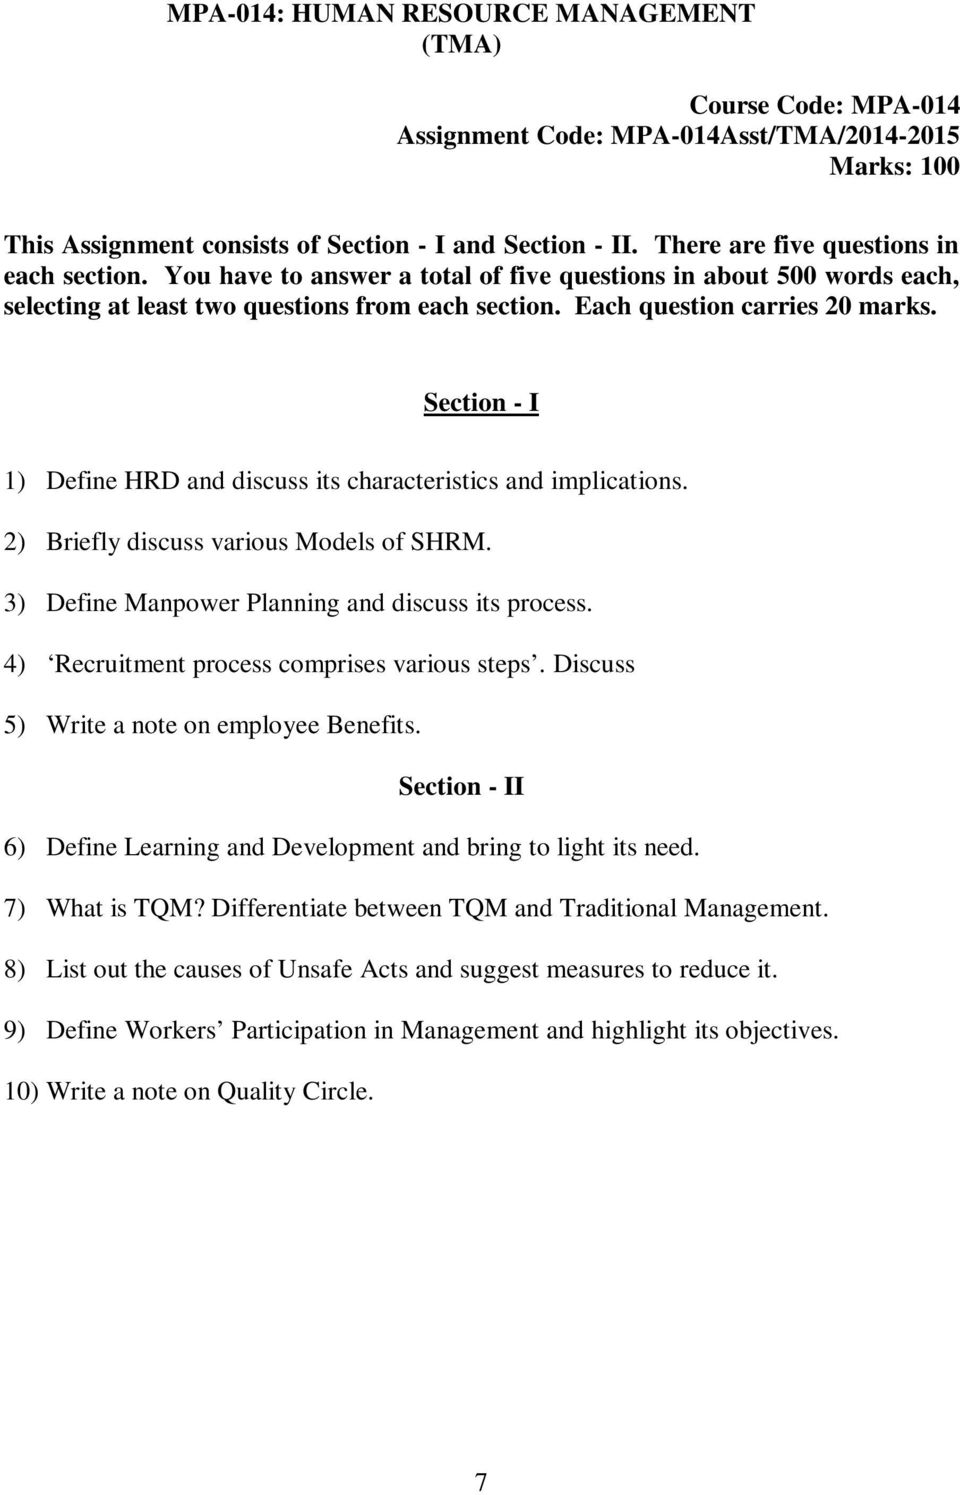 distance learning advantages essay rotes